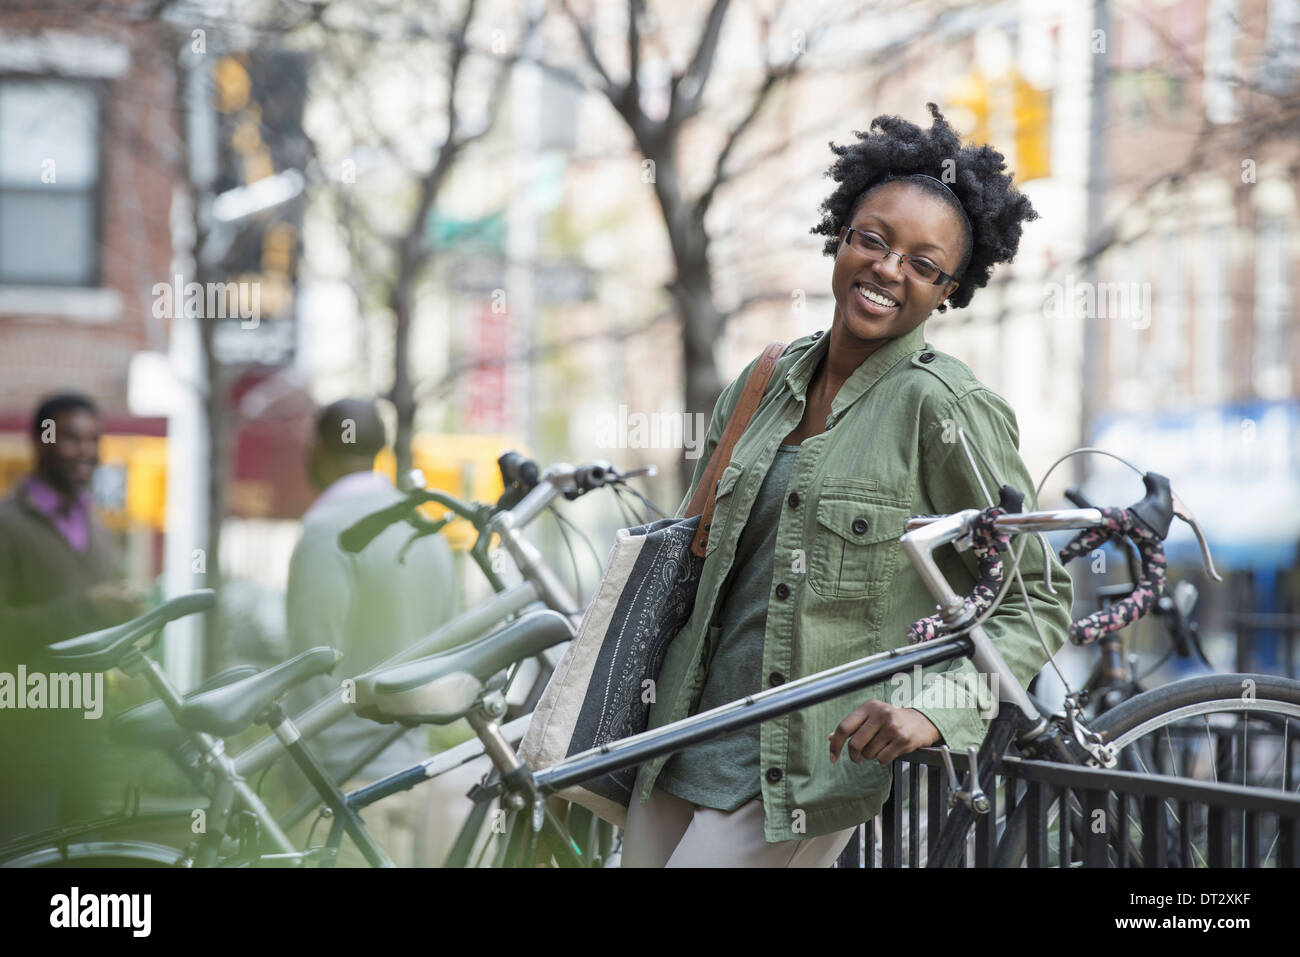 A woman leaning against a railing beside a bicycle rack - Stock Image